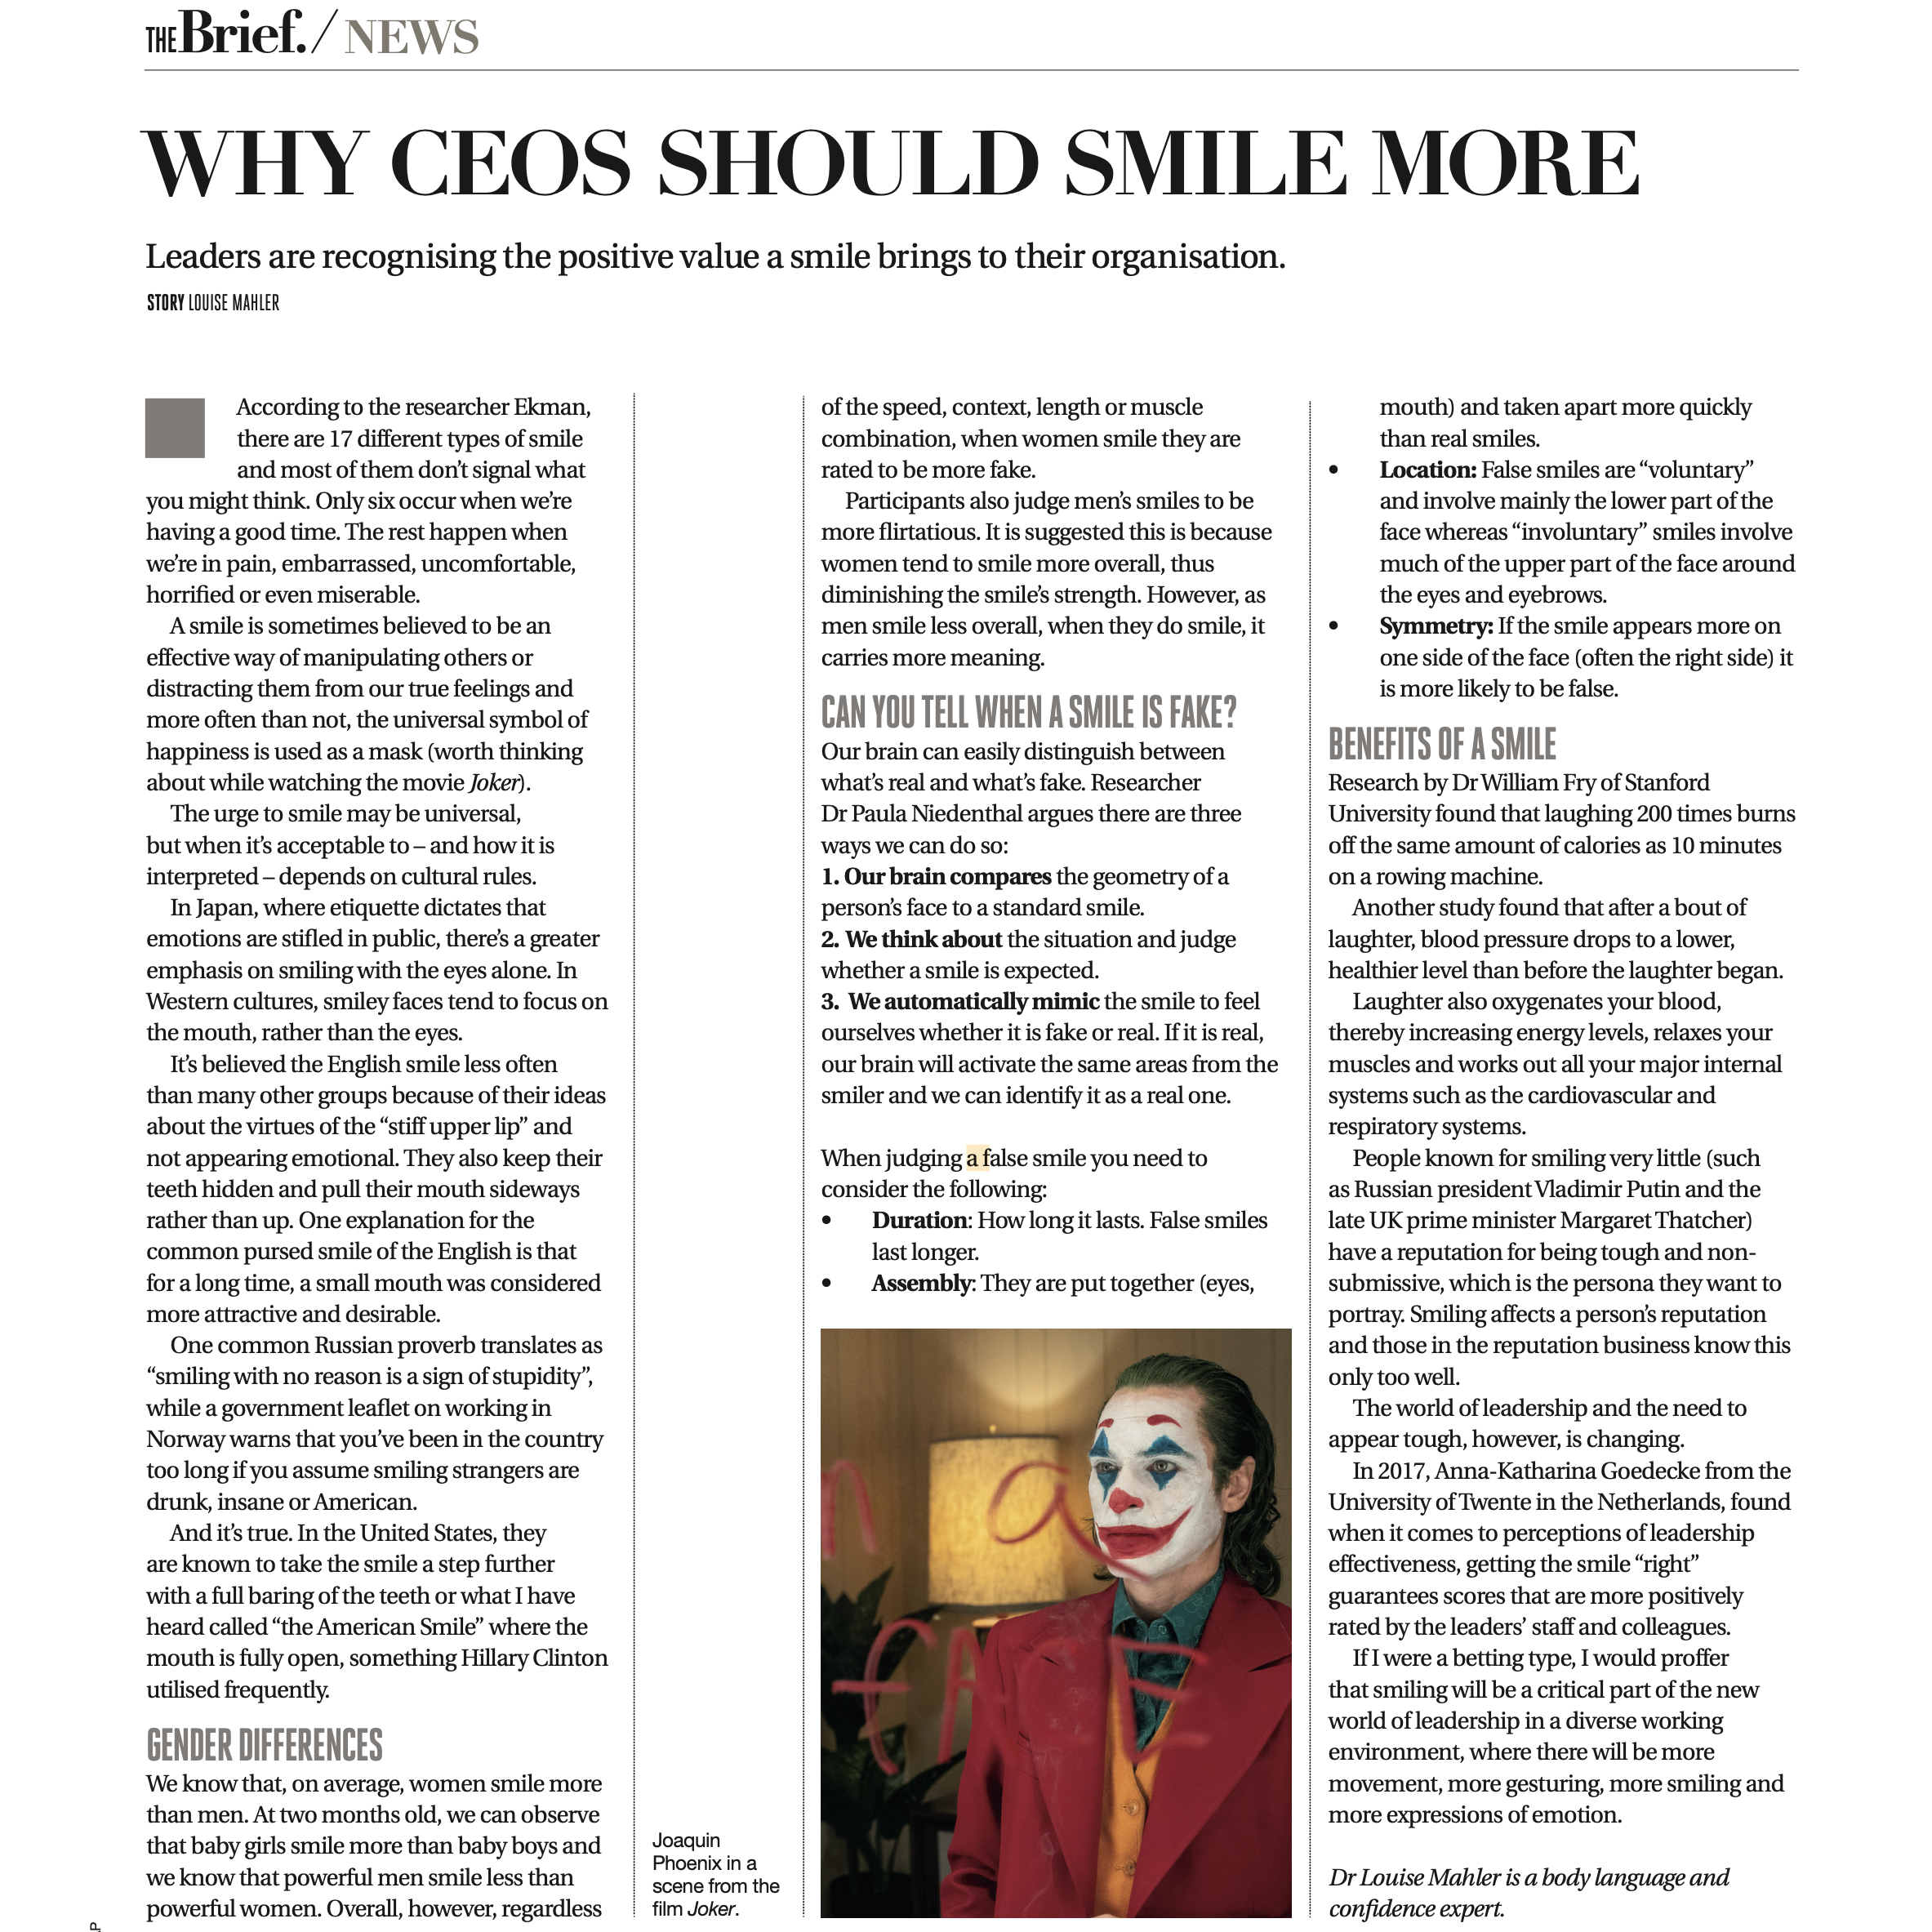 The Brief – Why CEOs should smile more